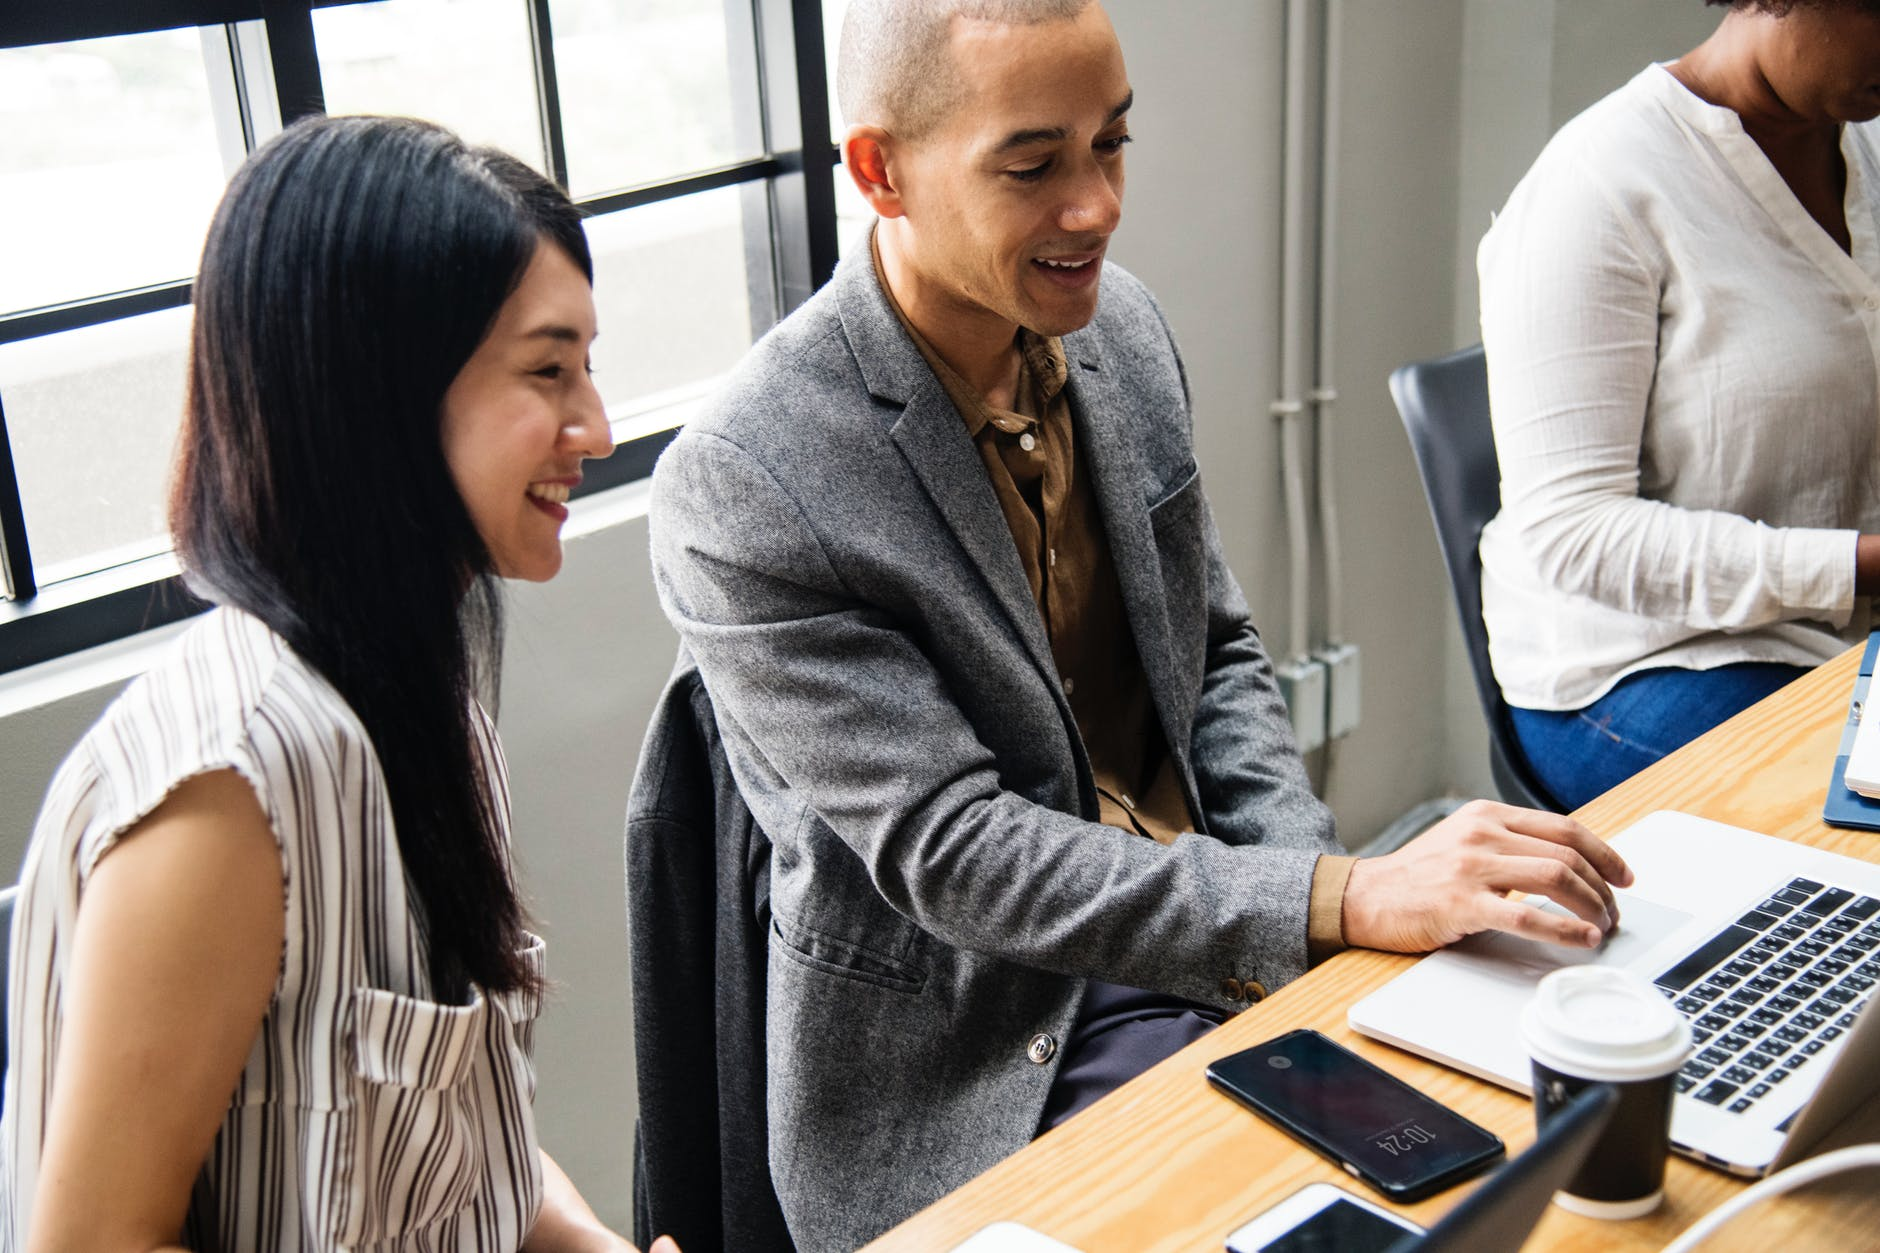 photo of man and woman looking at laptop